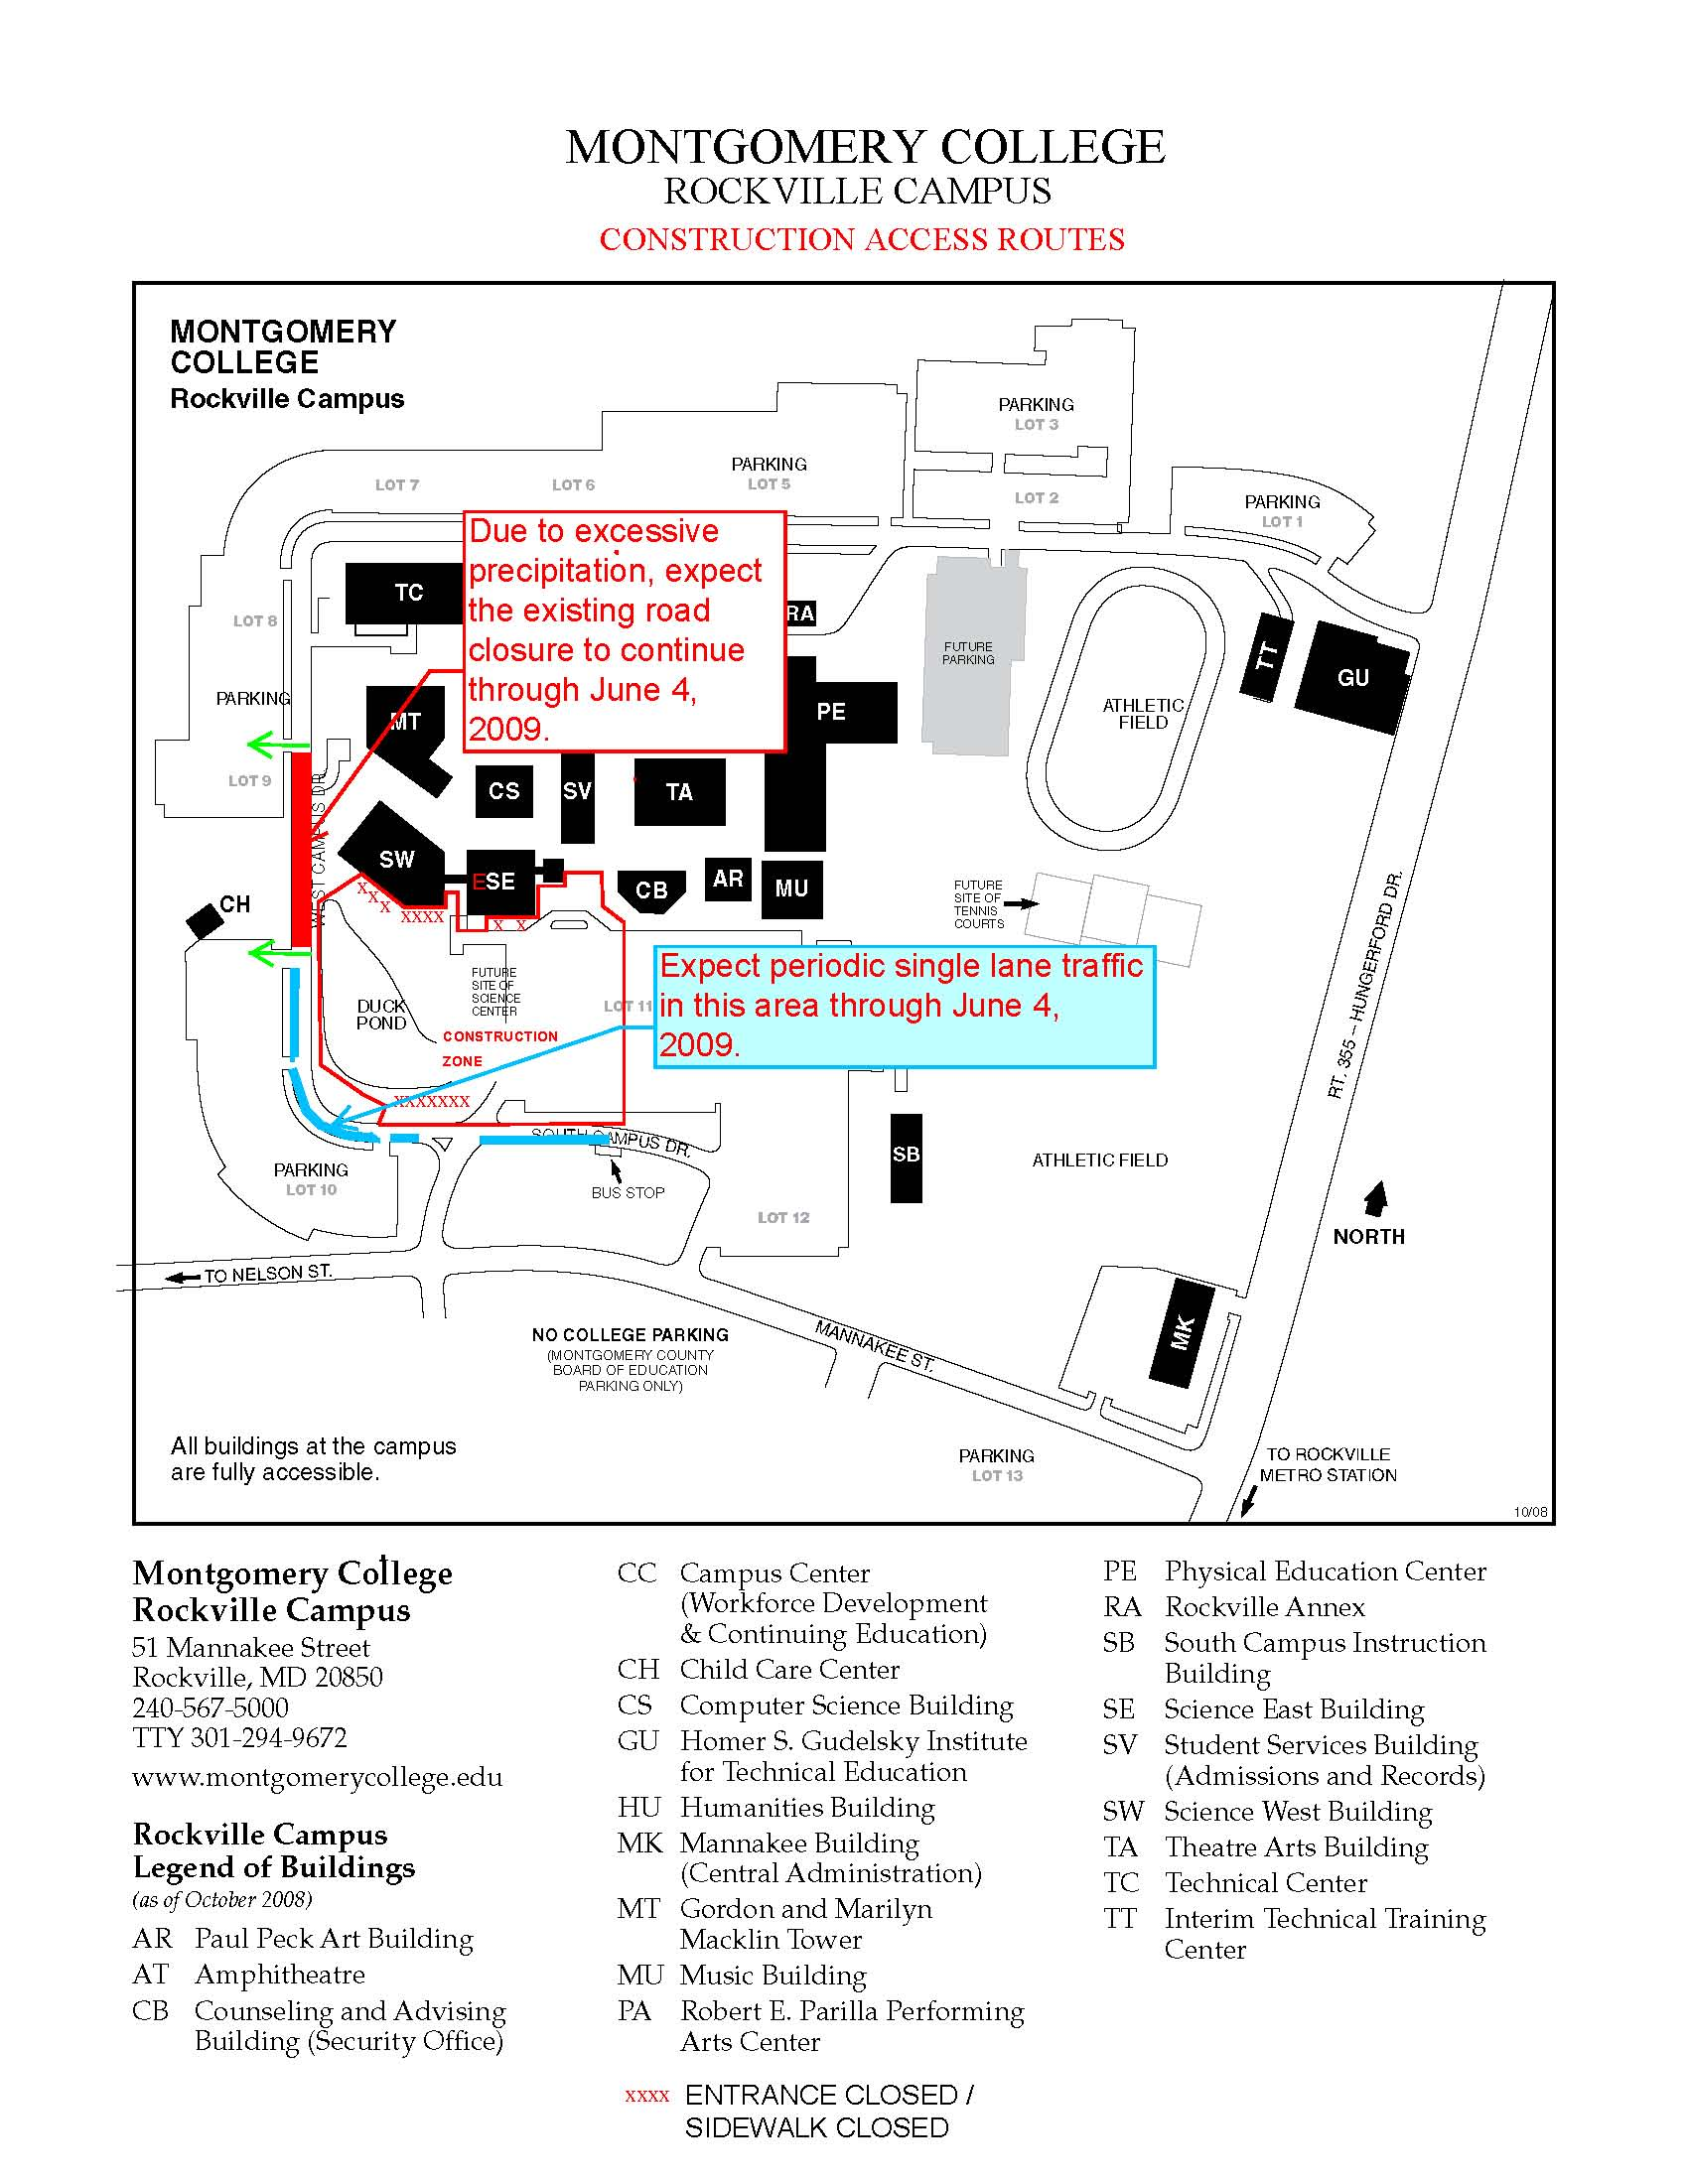 Temporary Road Closure On Rockville Campus  Inside MC Online